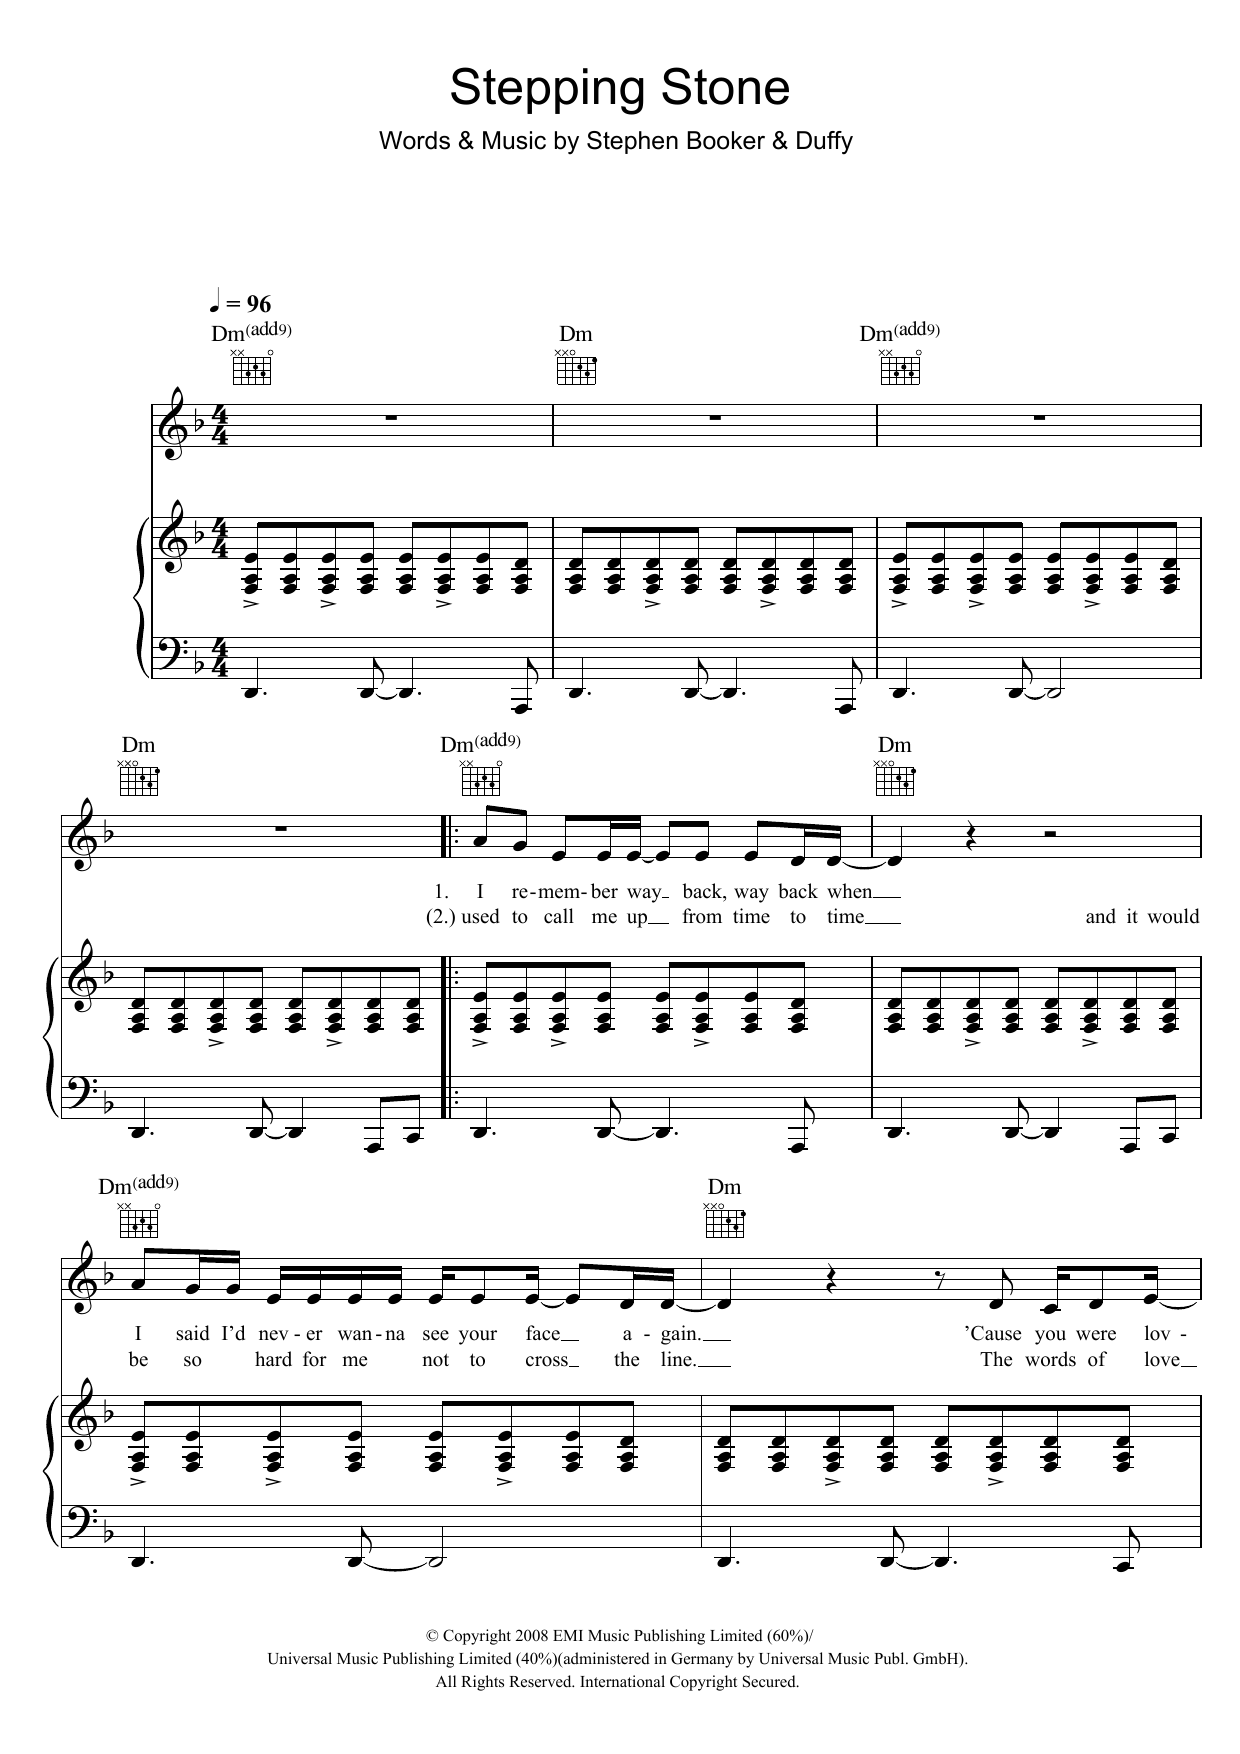 Duffy Stepping Stone sheet music preview music notes and score for Piano, Vocal & Guitar including 5 page(s)